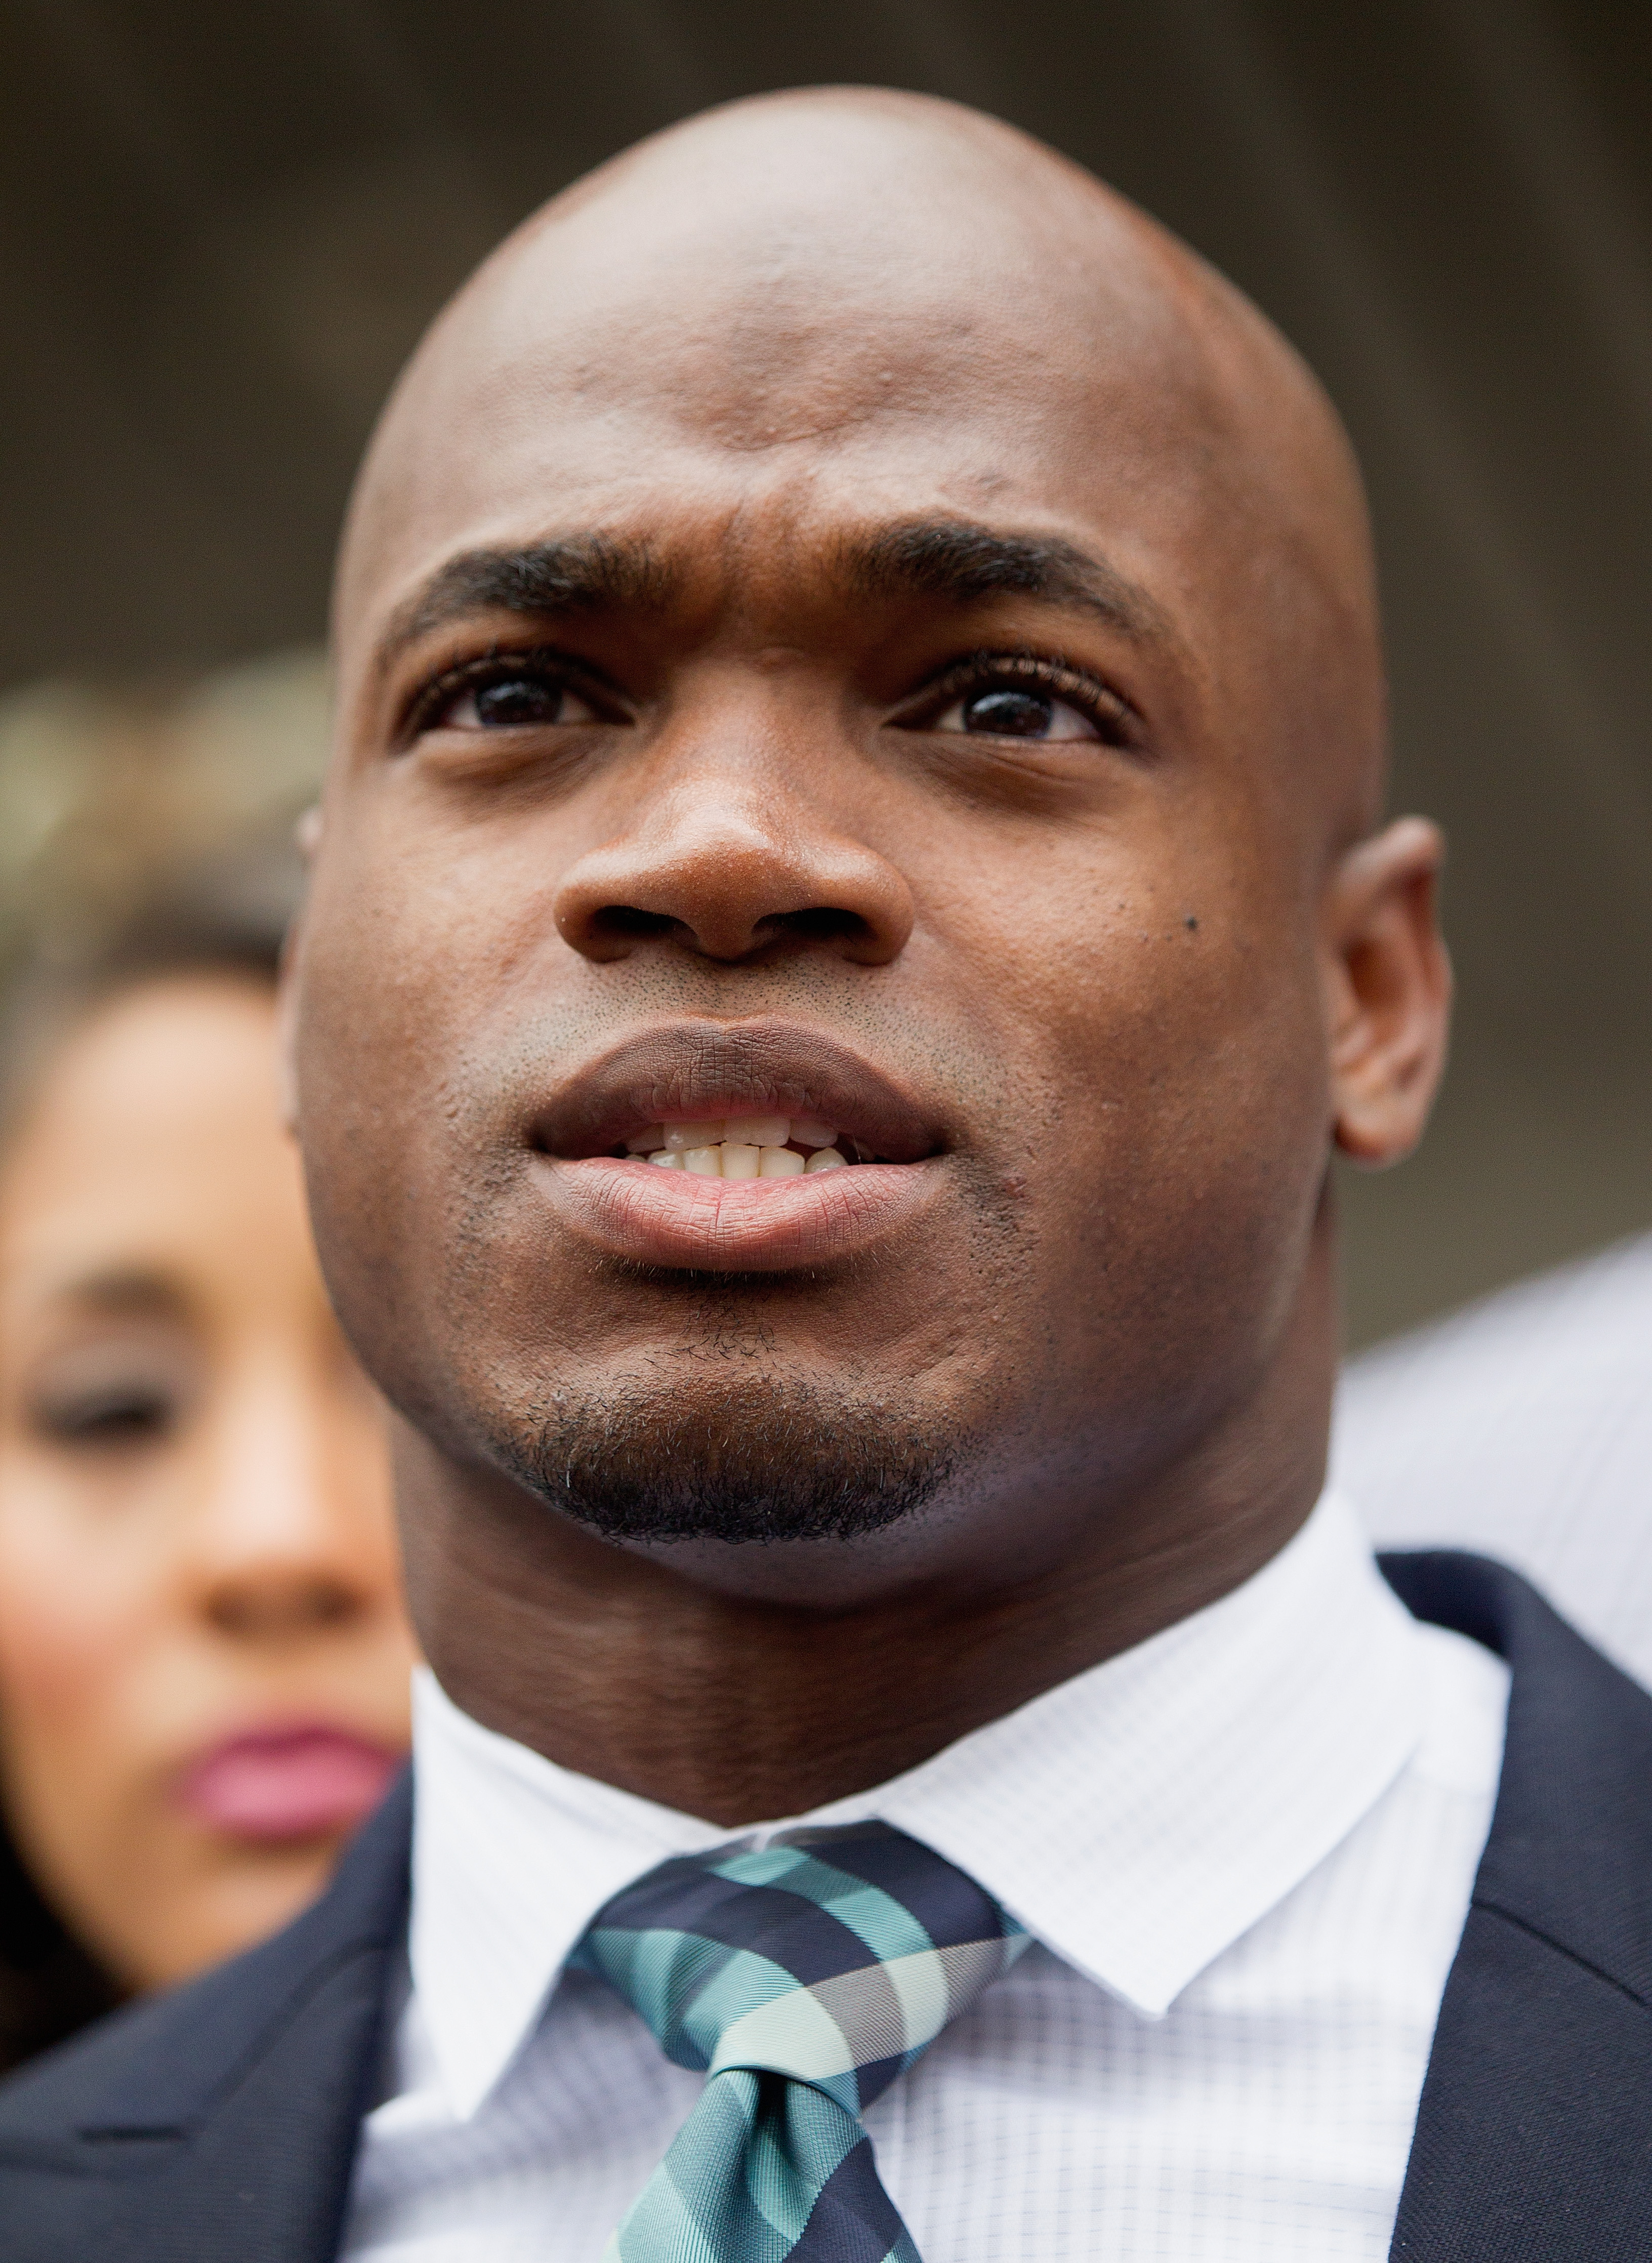 NFL running back Adrian Peterson of the Minnesota Vikings addresses the media after pleading  no contest  to a lesser misdemeanor charge of reckless assault Nov. 4, 2014 in Conroe, Texas.